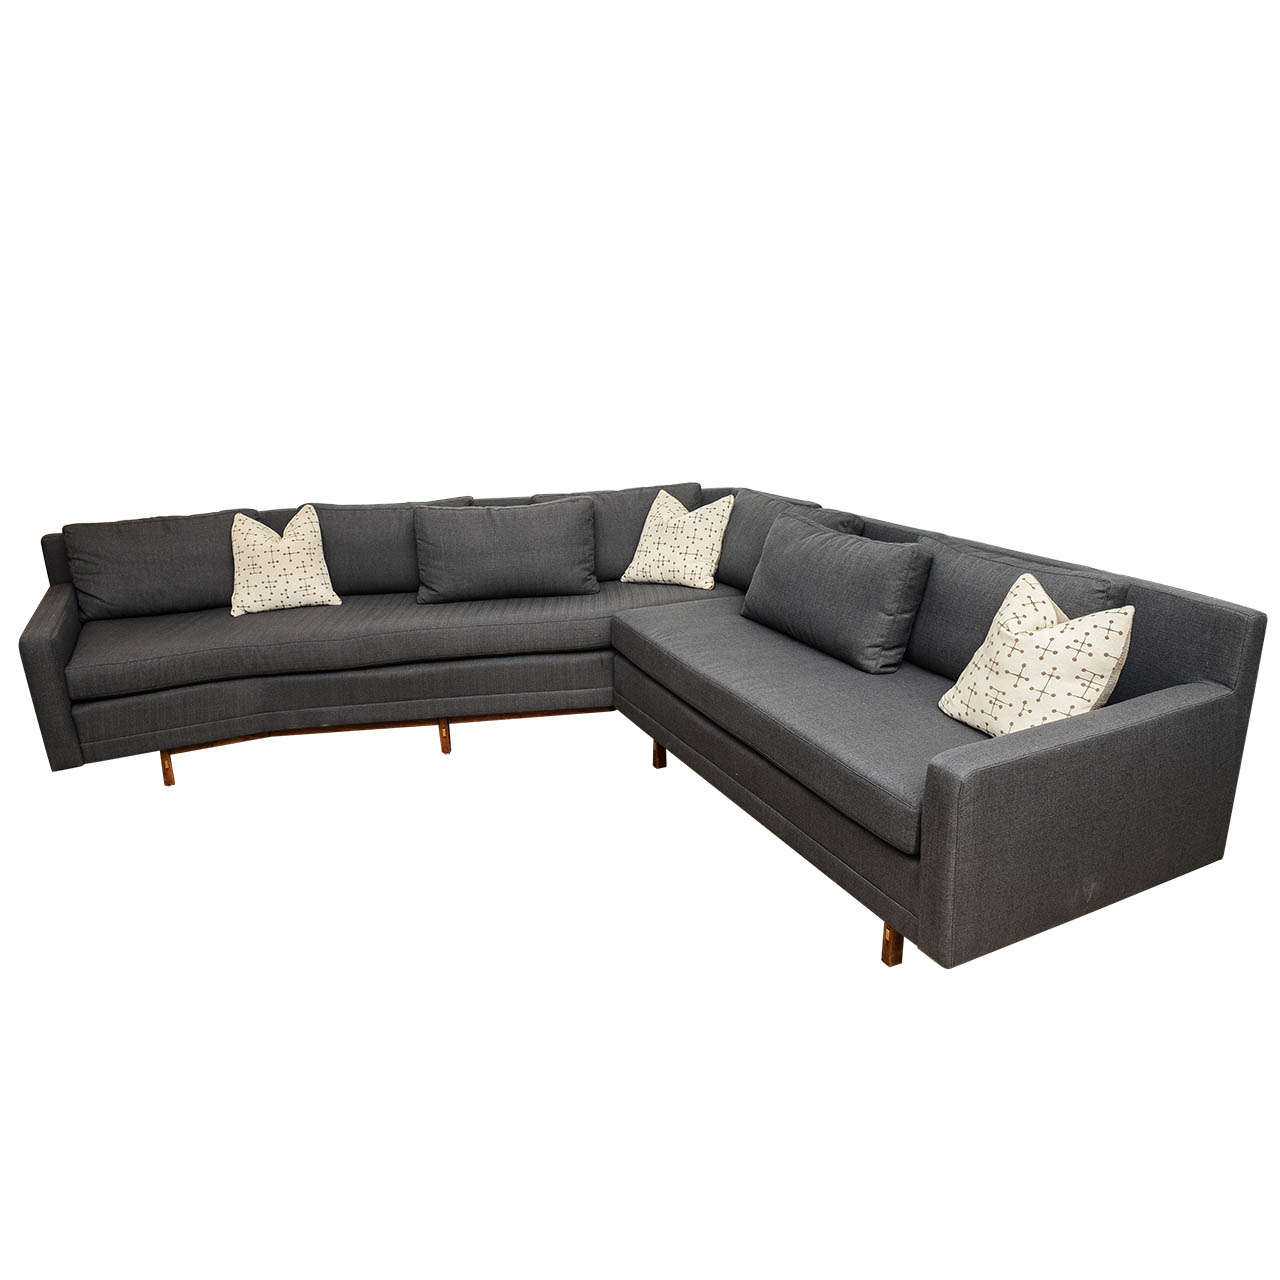 Paul mccobb sleek mid century modern vintage sectional for New sectional sofa